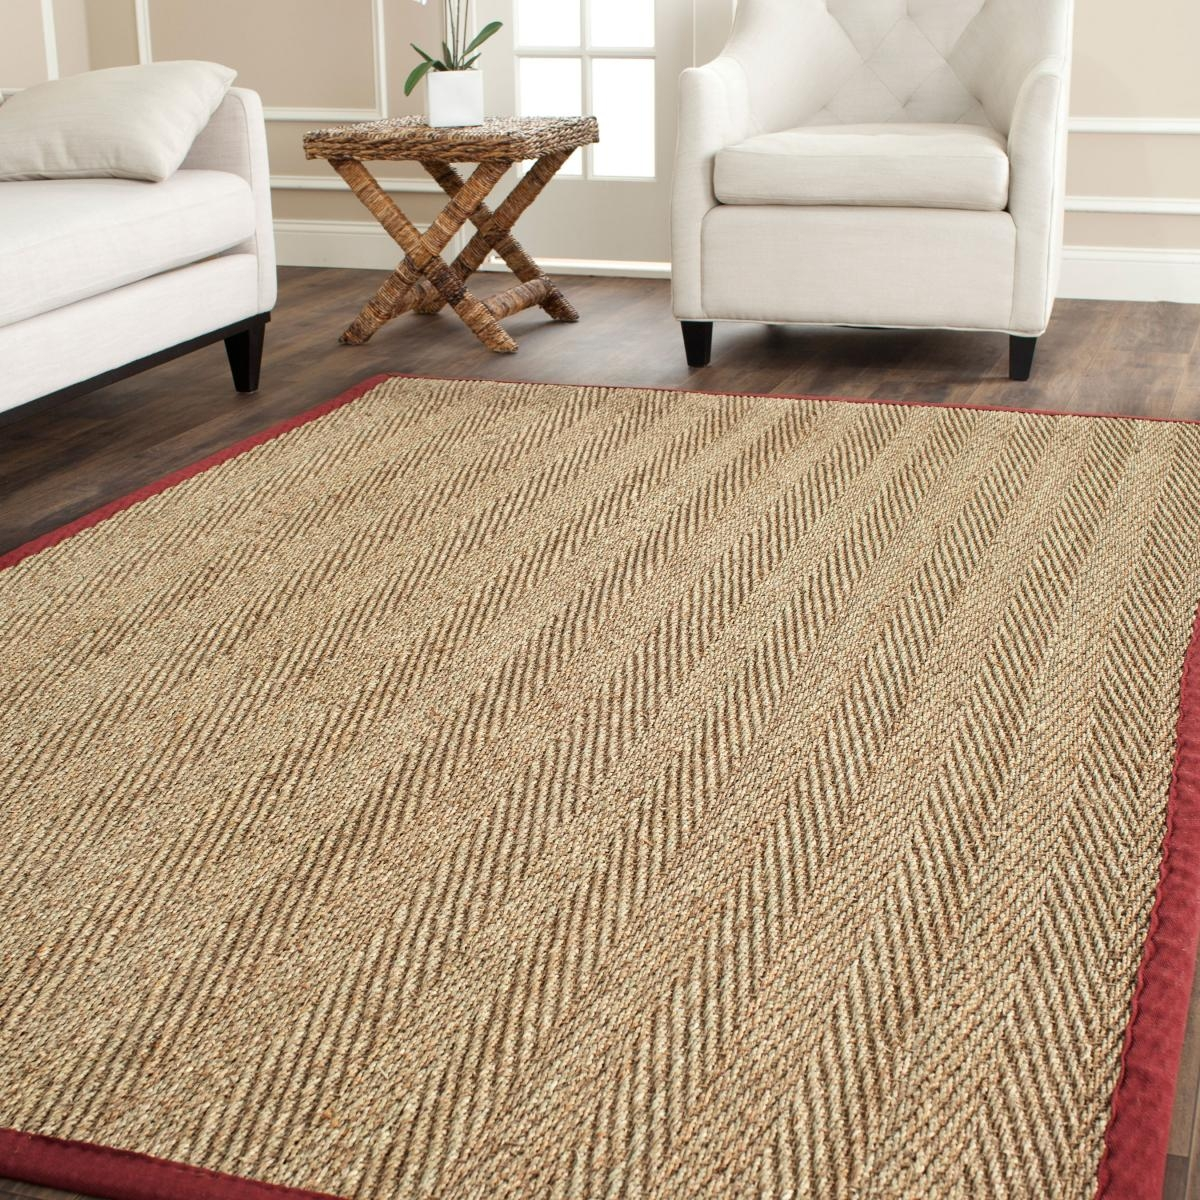 Rug Nf115d Natural Fiber Area Rugs Safavieh Pertaining To Natural Rugs (Image 10 of 15)